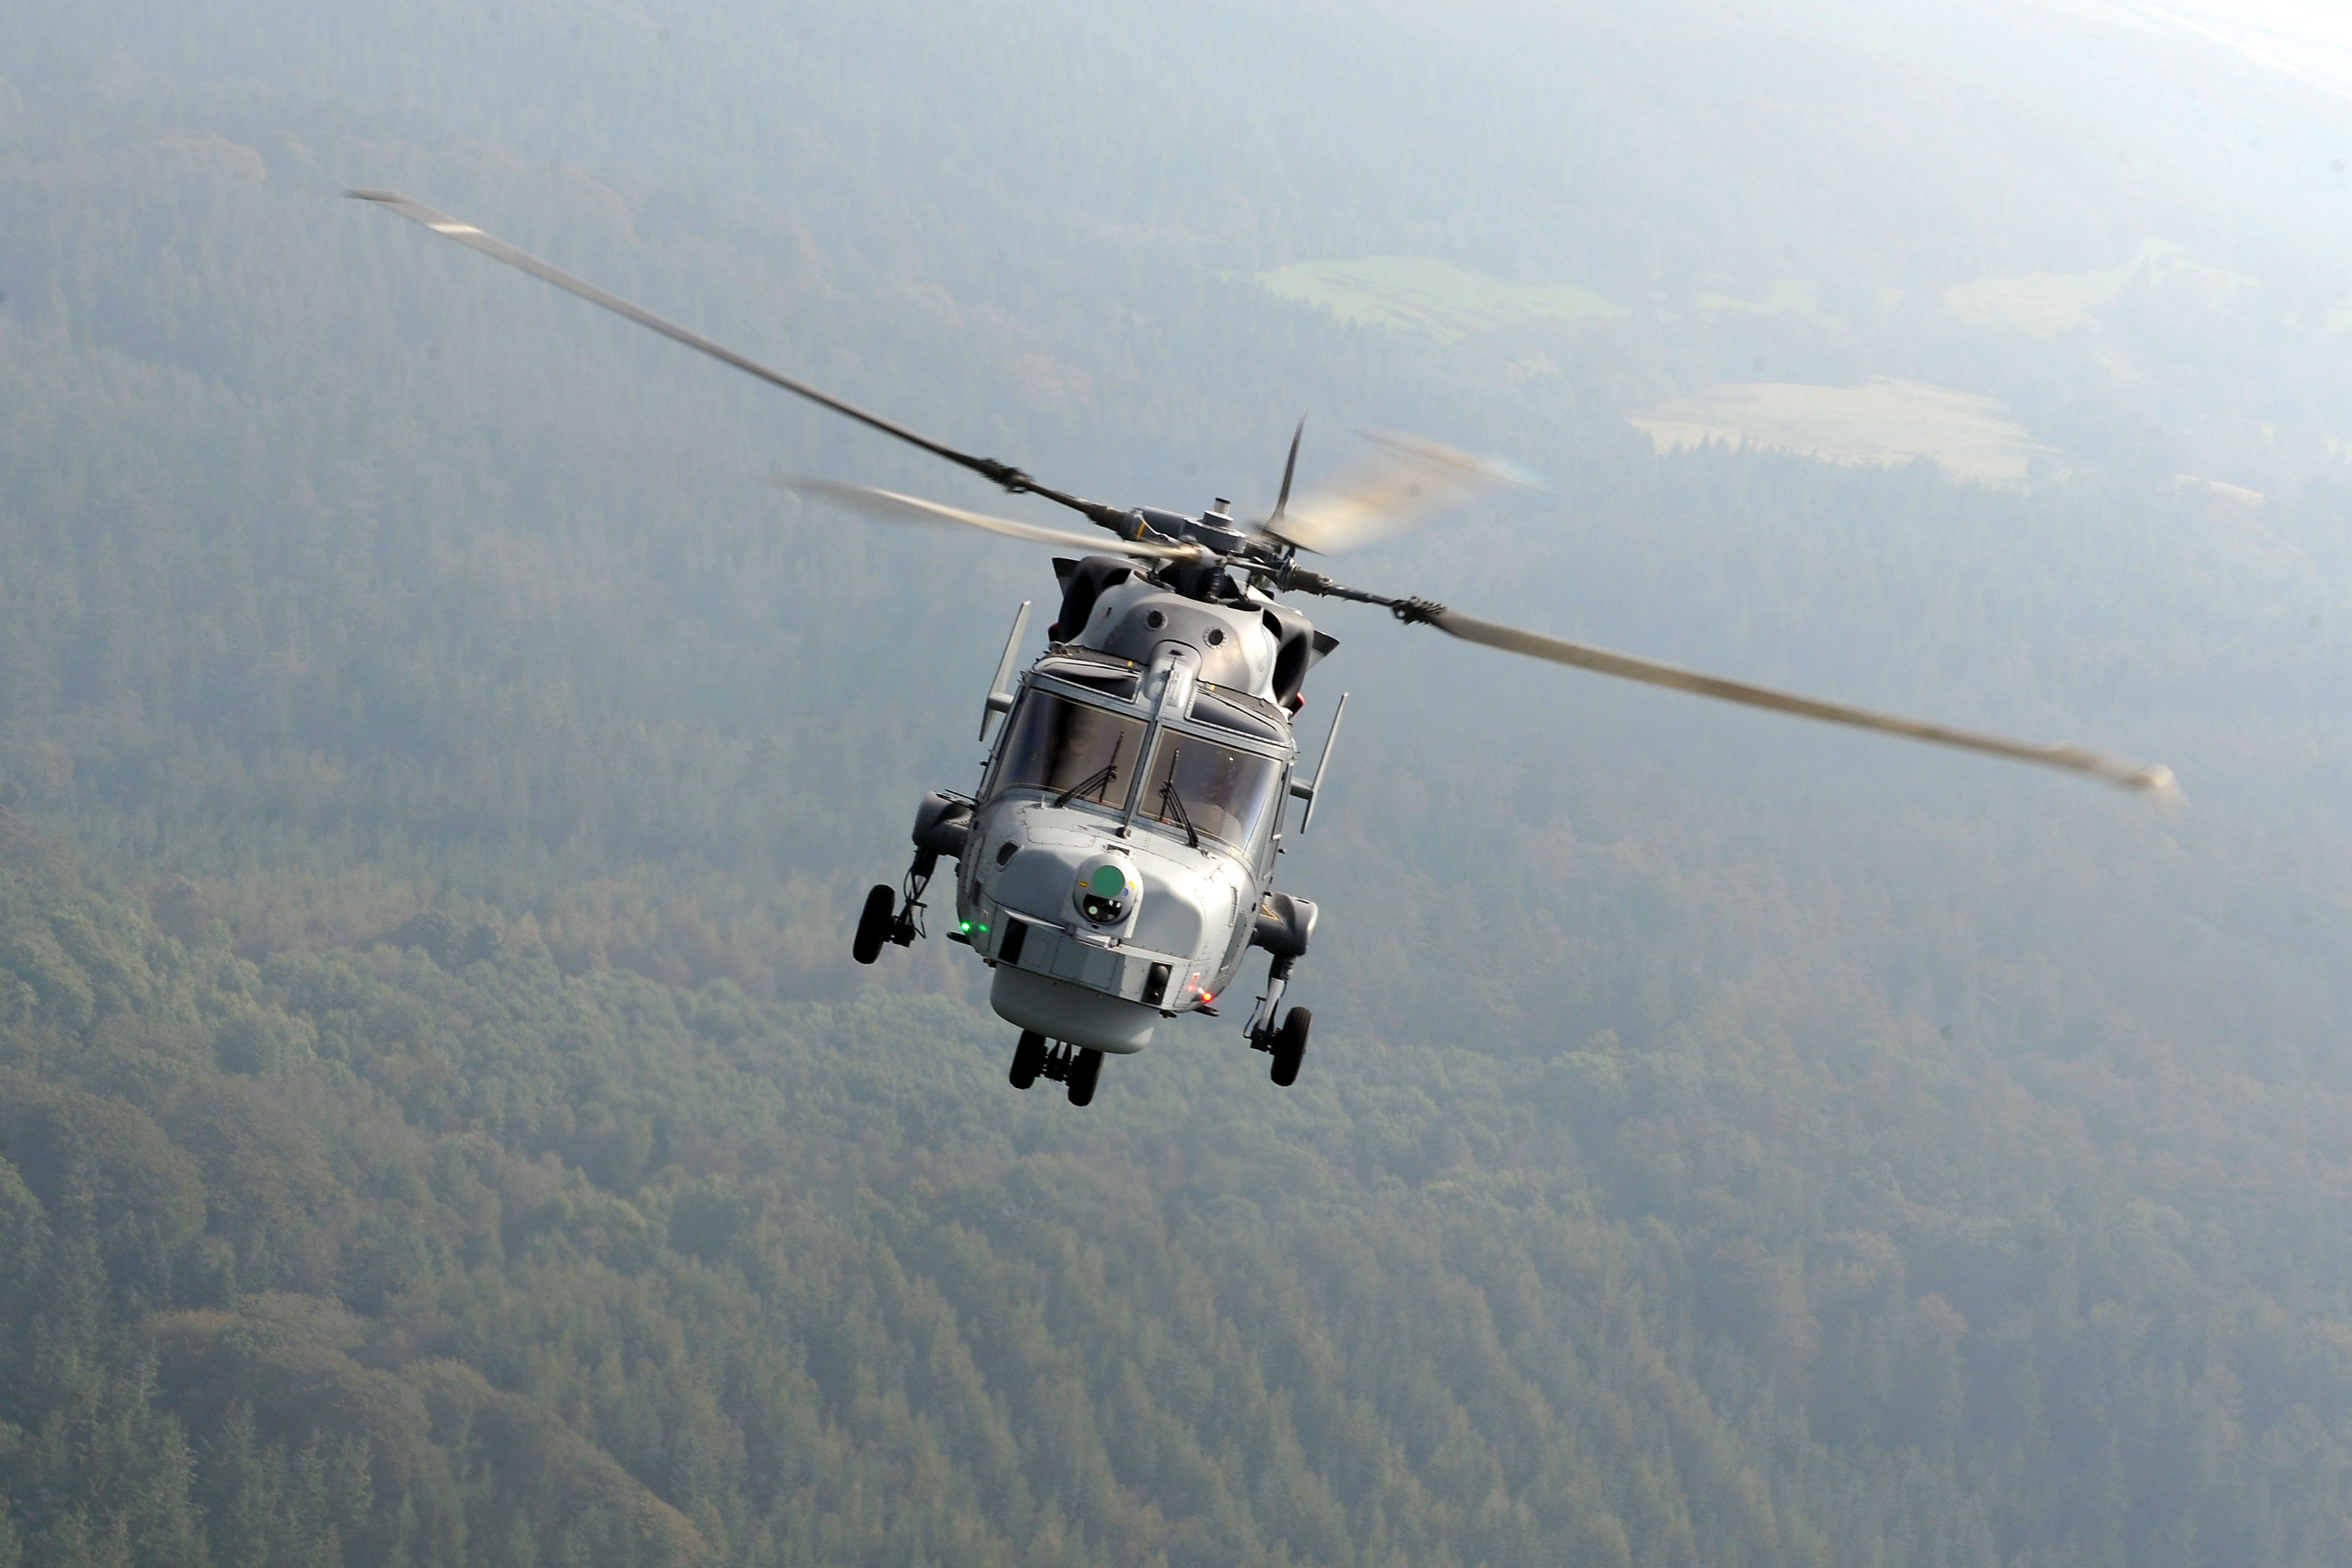 fileroyal navy wildcat helicopter mod 45158427jpg - Helicopter Mod